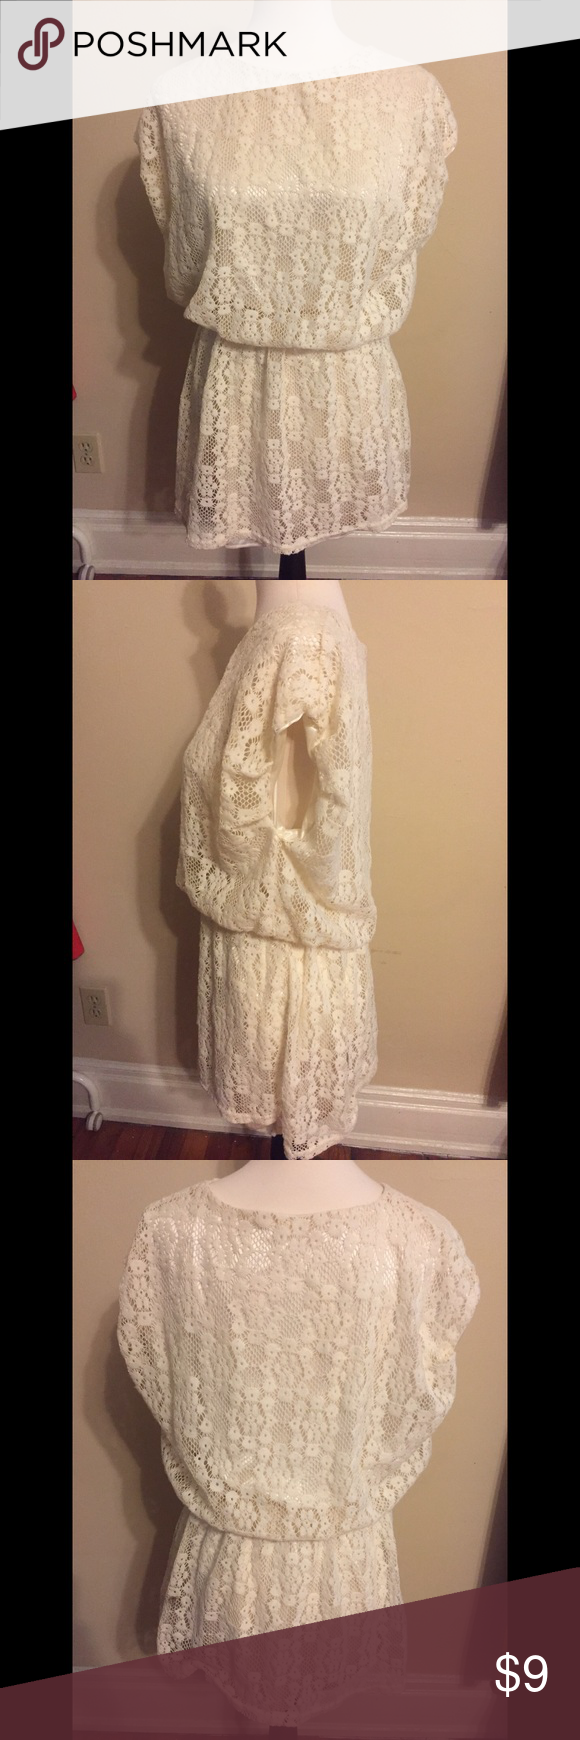 Cream ivory white lace slouchy dress ivory white white lace and